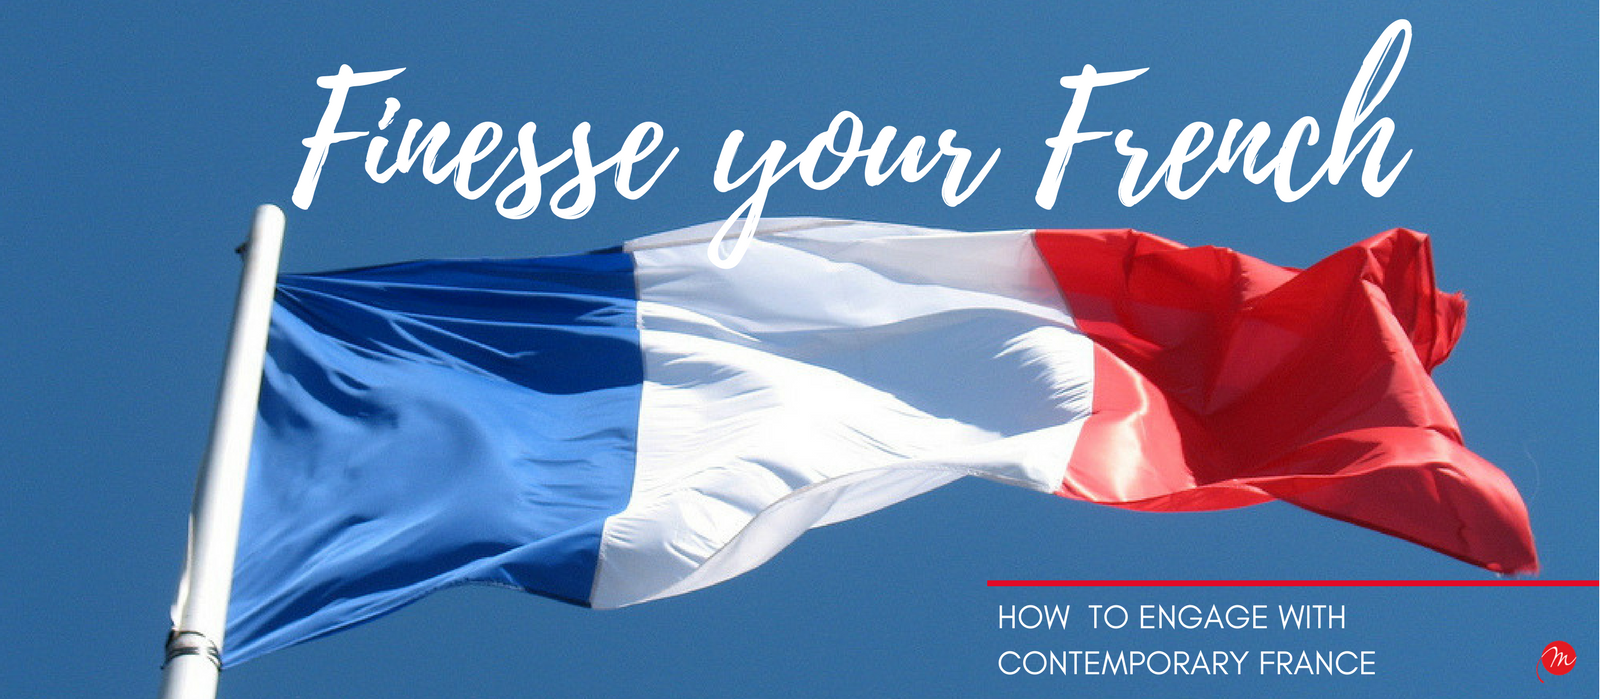 MyFrenchLife.org - My French Life™ - Finesse your French - How to engage with contemporary France - Contemporary France - French Media - Header